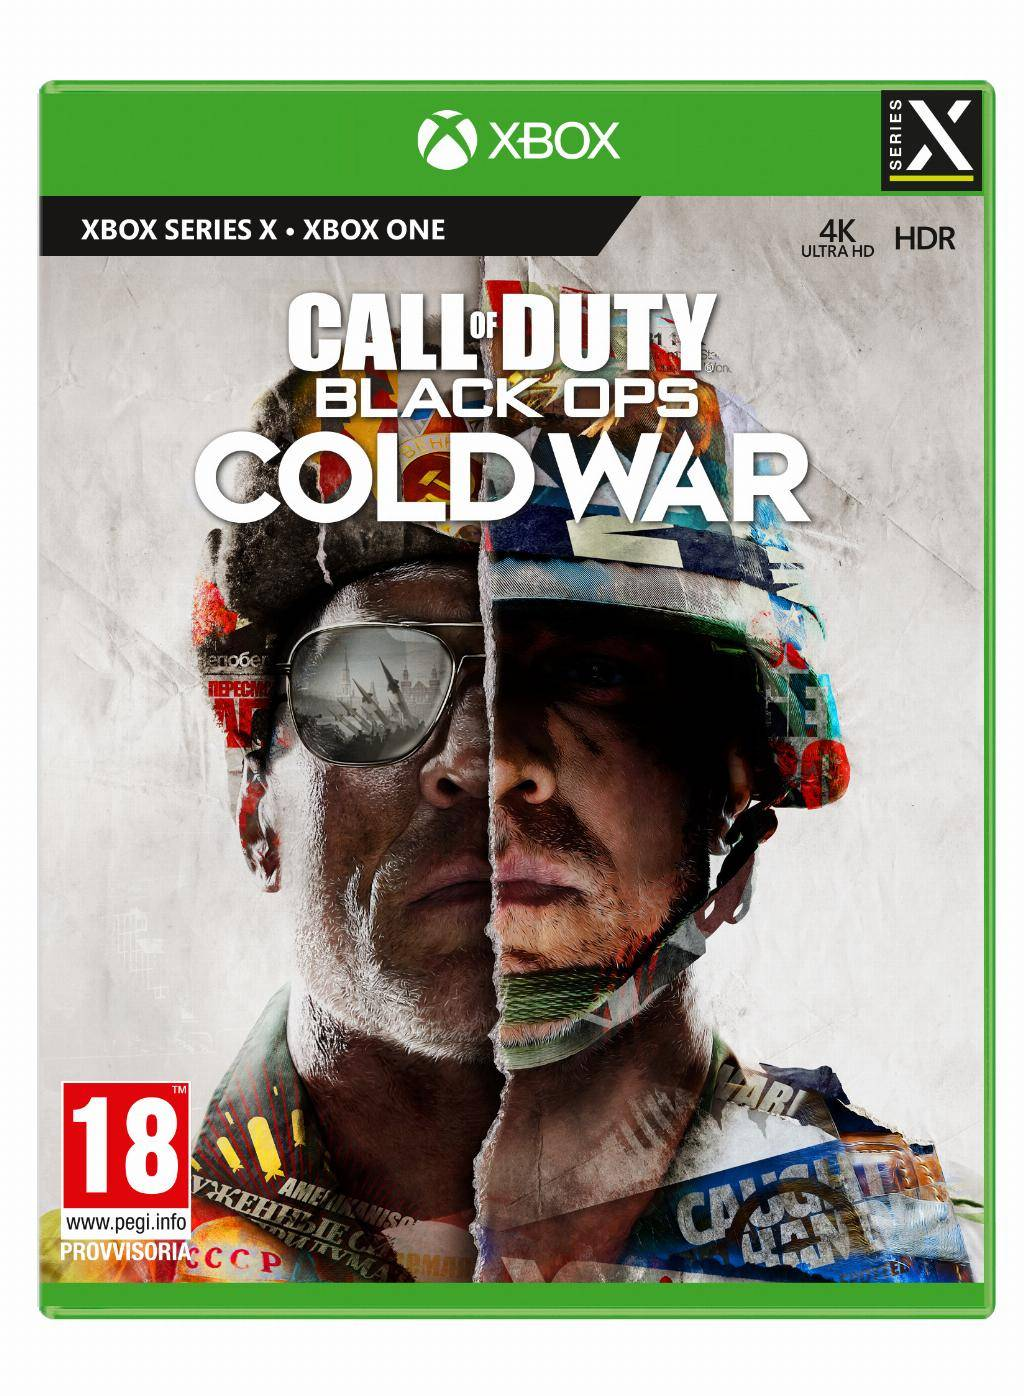 Microsoft Activision Blizzard Call of Duty: Black Ops Cold War - Standard Edition, Xbox Series X Basic Inglese, ITA Xbox One X